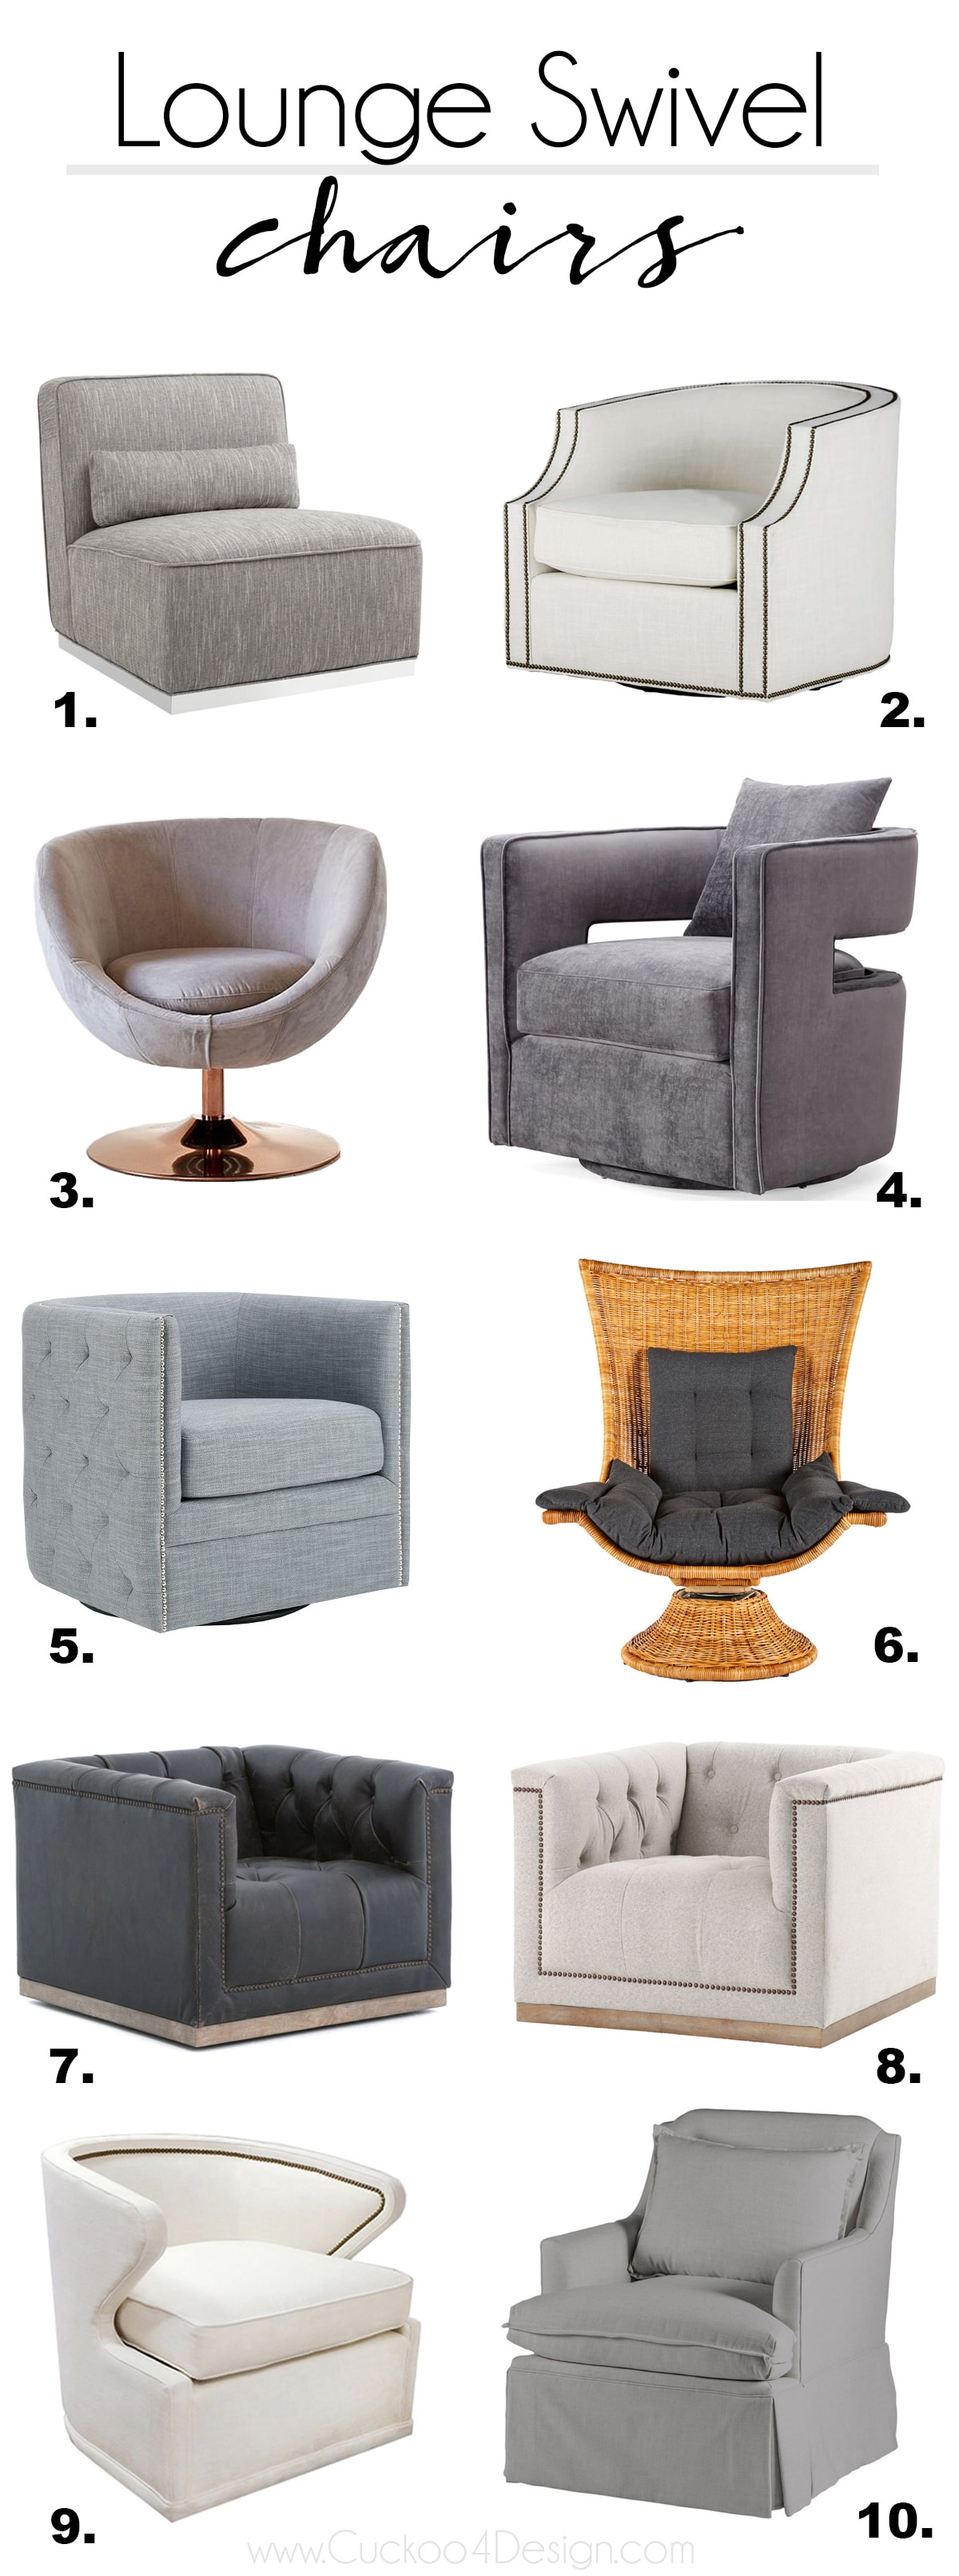 10 most stylish lounge swivel chairs for your living room or nursery | rattan swivel chair | leather swivel chair | retro swivel chair | velvet swivel chair | button tufted swivel chair | tulip swivel chair | studded swivel chair